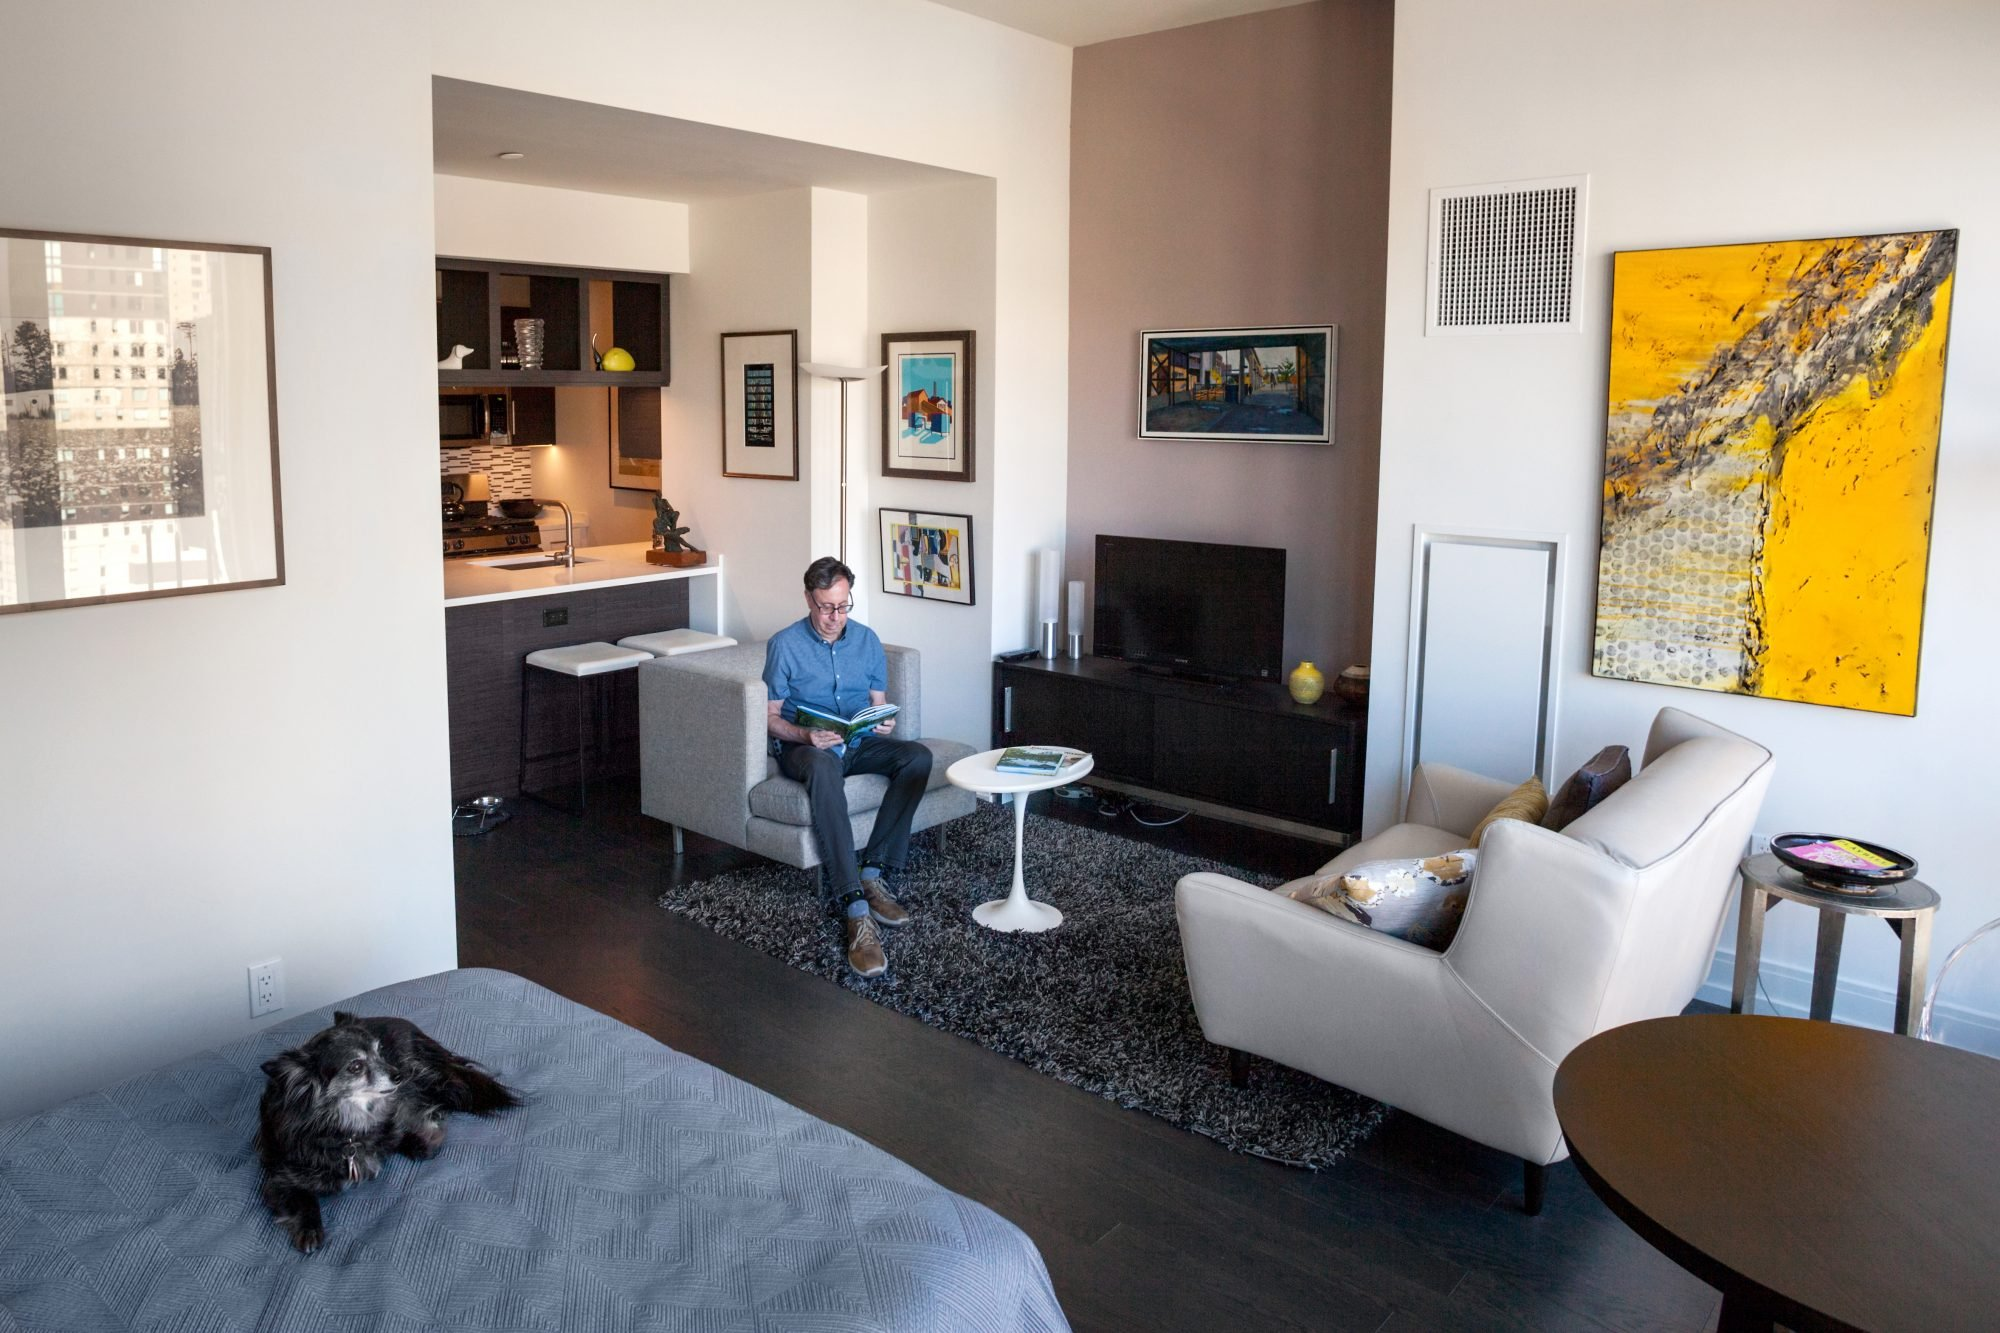 Posted On Mon June 11 2018 By Dana Schulz In Features Hell\u0027s Kitchen Interiors My SQFT House Tours & My 500sqft: An art collector from Philly swaps space for amenities ...